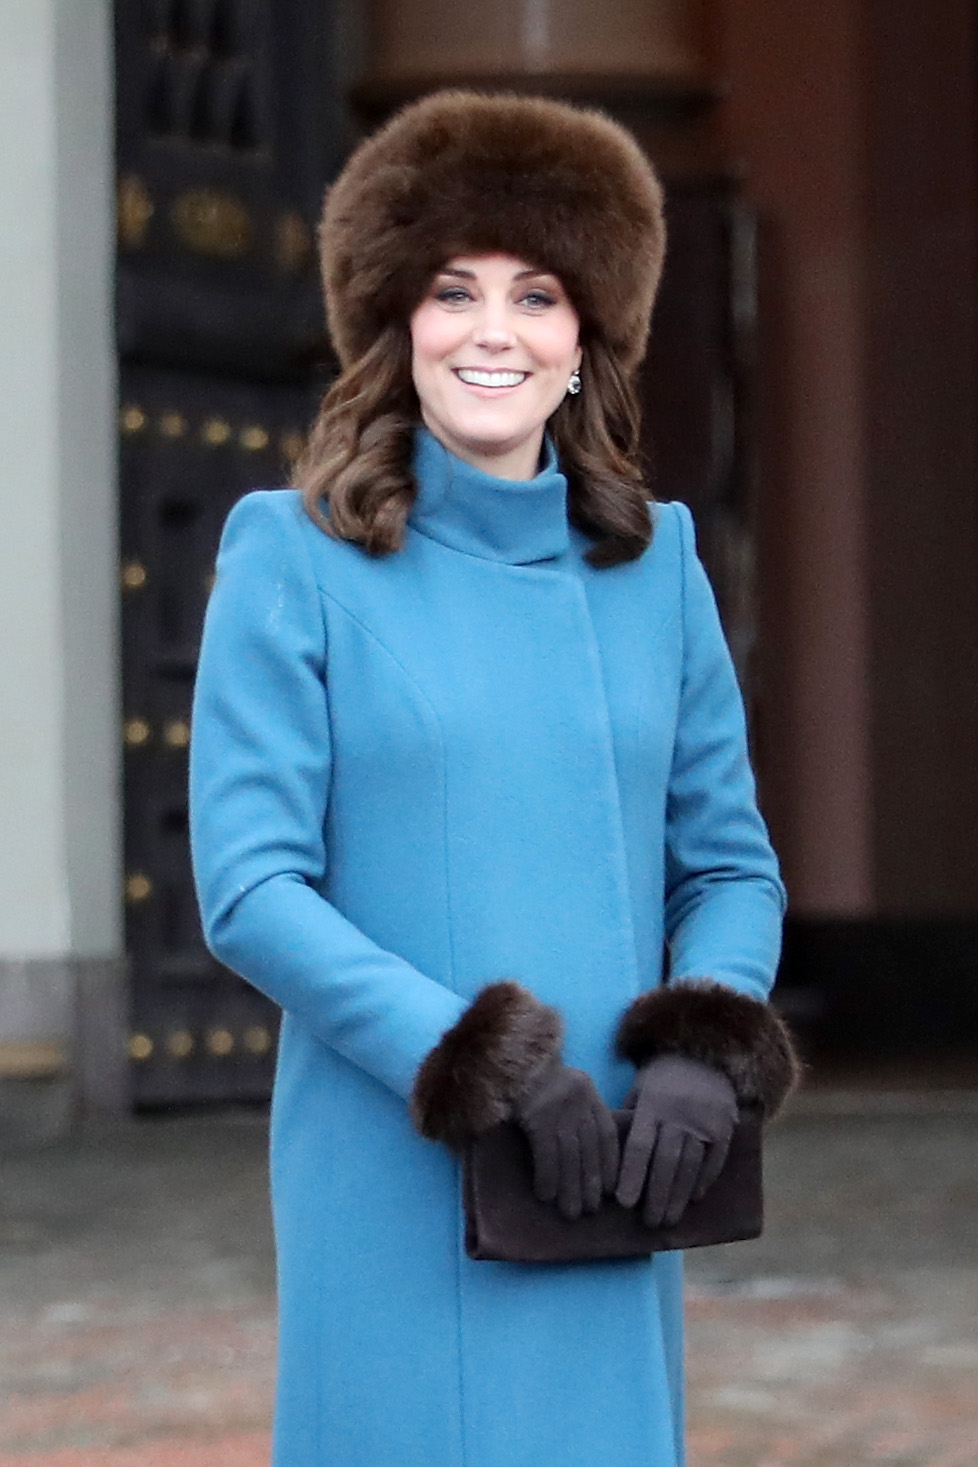 OSLO, NORWAY - FEBRUARY 01:  Catherine, Duchess of Cambridge exits the Royal Palace on her way to visit the Princess Ingrid Alexandra Sculpture Park on day 3 of the Duke and Duchess of Cambridge visit to Sweden and Norway on February 1, 2018 in Oslo, Norway. The Princess Ingrid Alexandra Sculpture Park opened last year in the name of Princess Ingrid Alexandra to mark the 25th anniversary of The King's reign. During this visit, The Duke and Duchess will have the opportunity to meet members of the public gathered in the park.  (Photo by Chris Jackson/Chris Jackson/Getty Images)